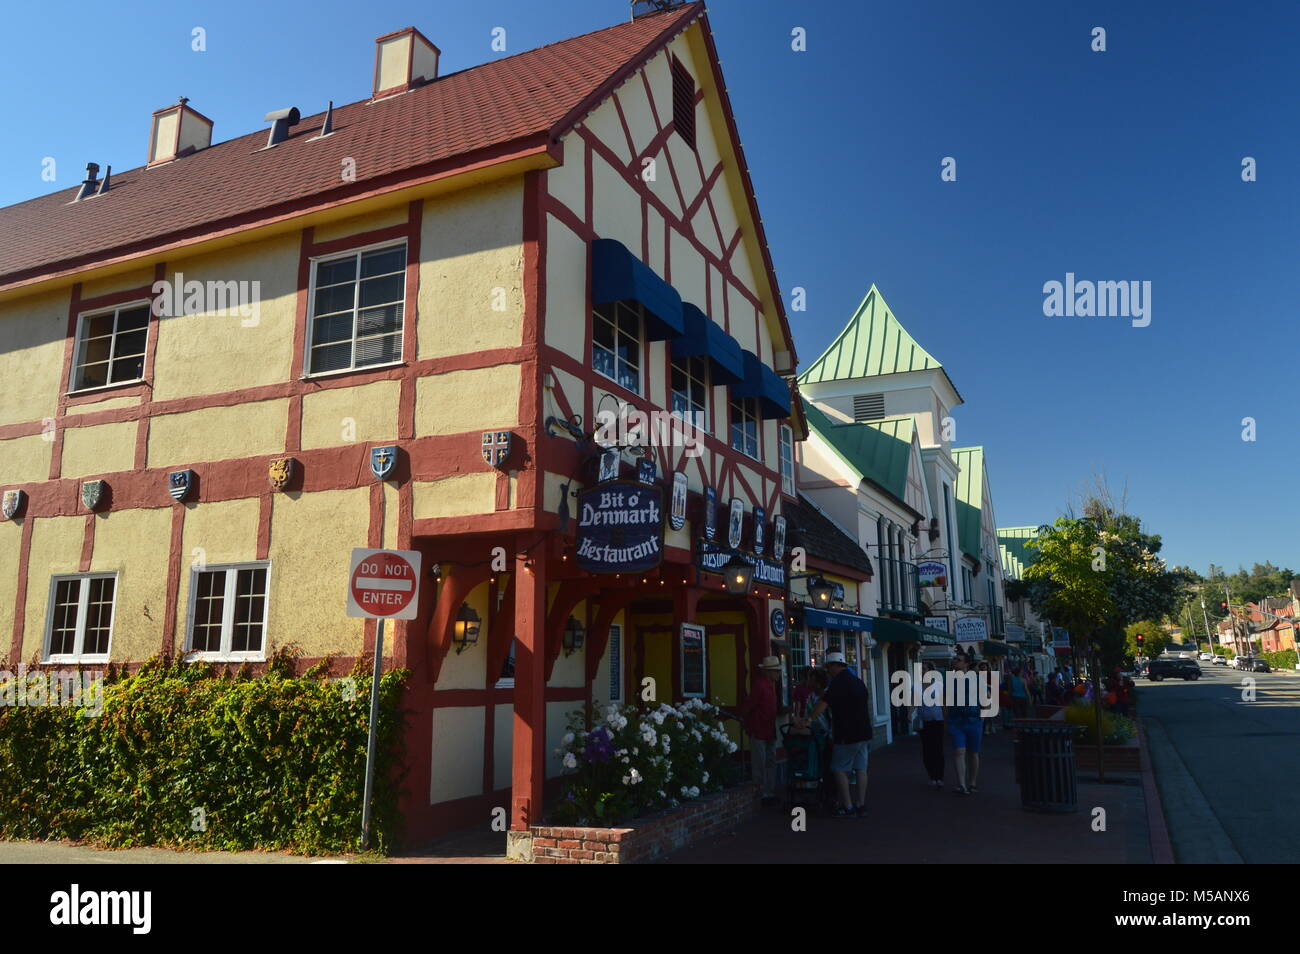 Restaurants Of Solvang: A Picturesque Village Founded By Danes With Its Typical Contructions Of The Historic Denmark. - Stock Image